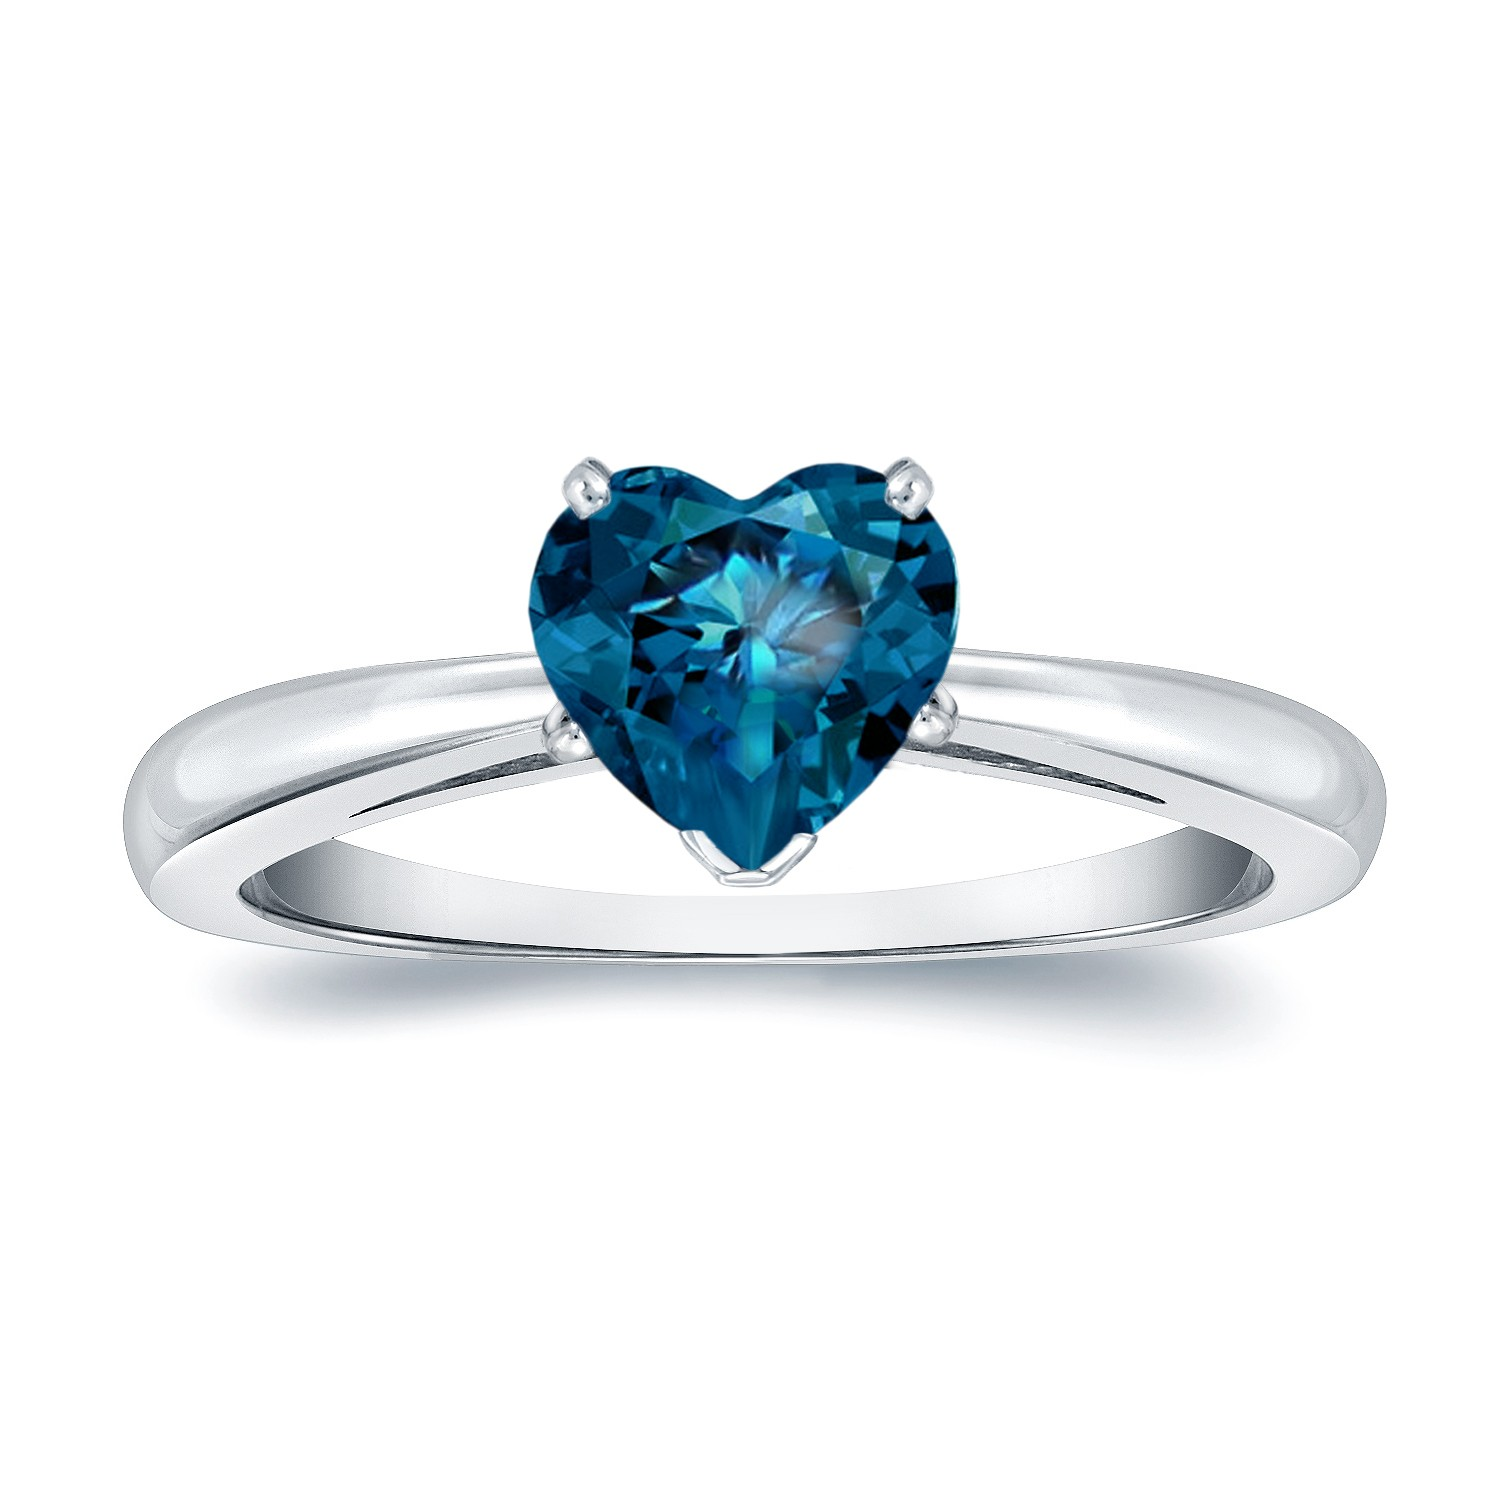 Certified 14k Rose Gold Heart Shape Blue Diamond Solitaire Ring 1.00 ct. tw. (Blue, SI1-SI2)